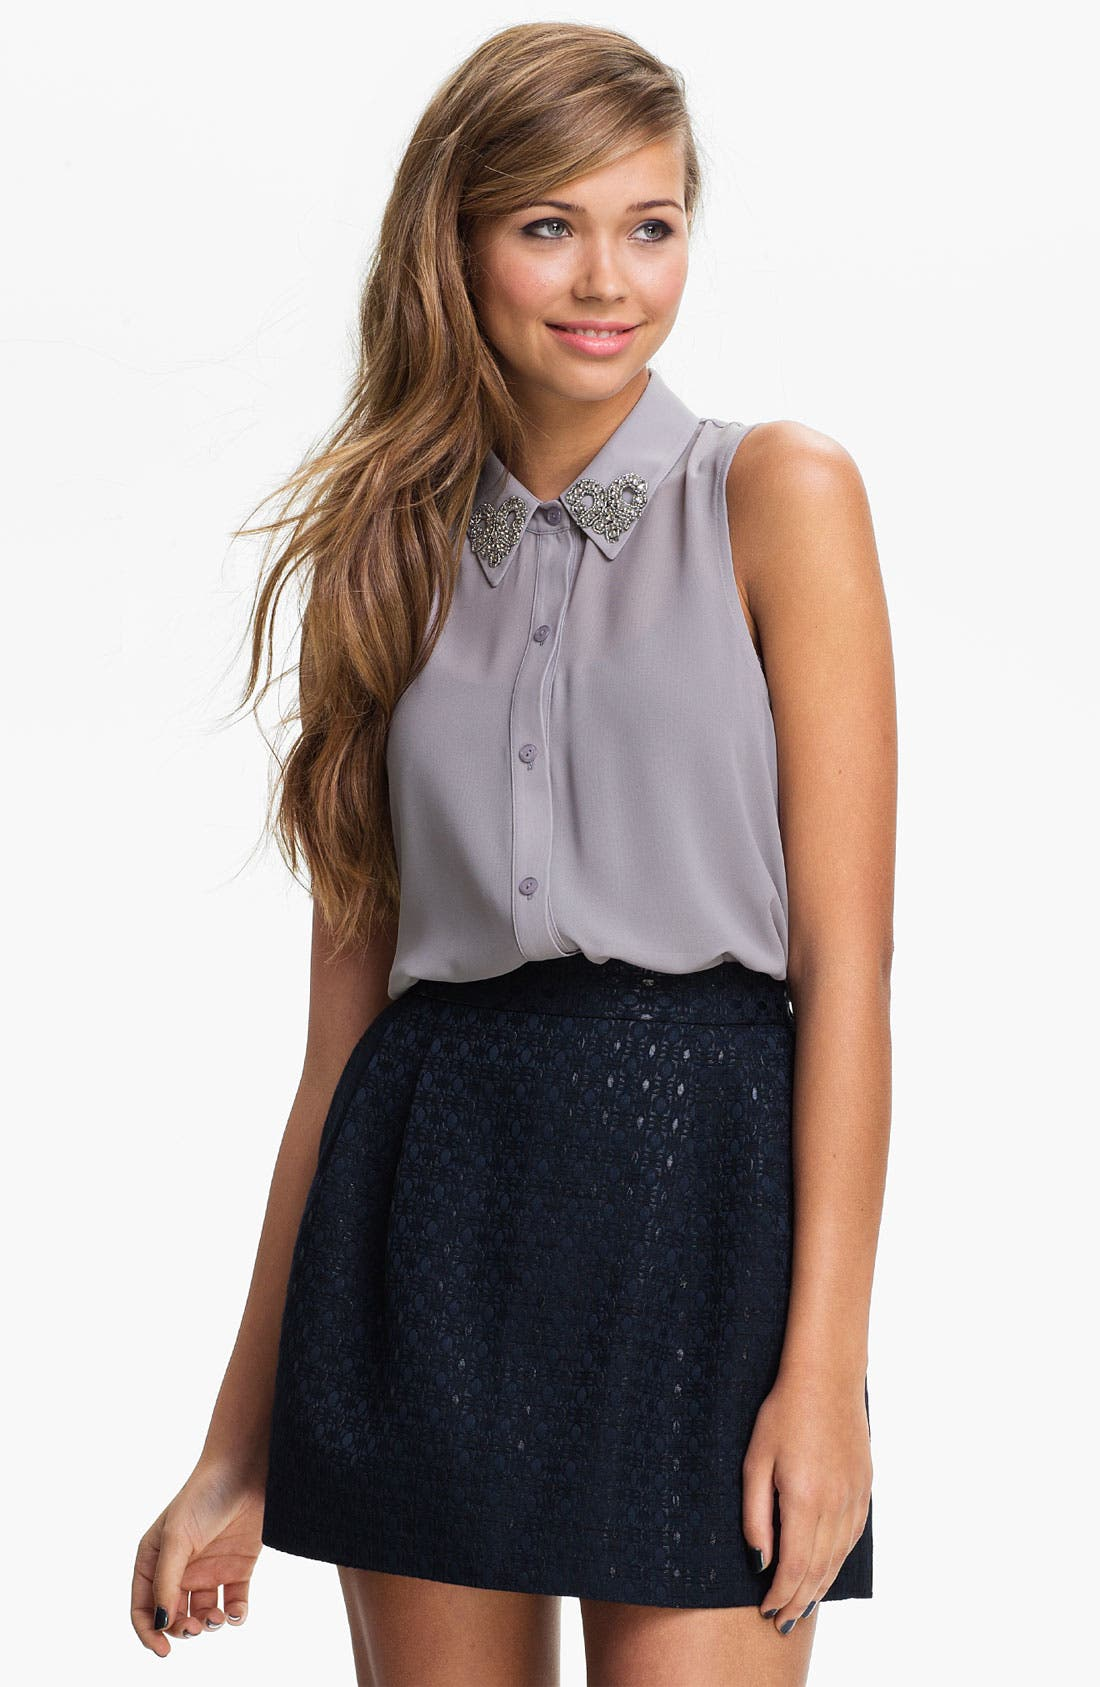 Alternate Image 1 Selected - Lush Embellished Collar Sleeveless Shirt (Juniors)